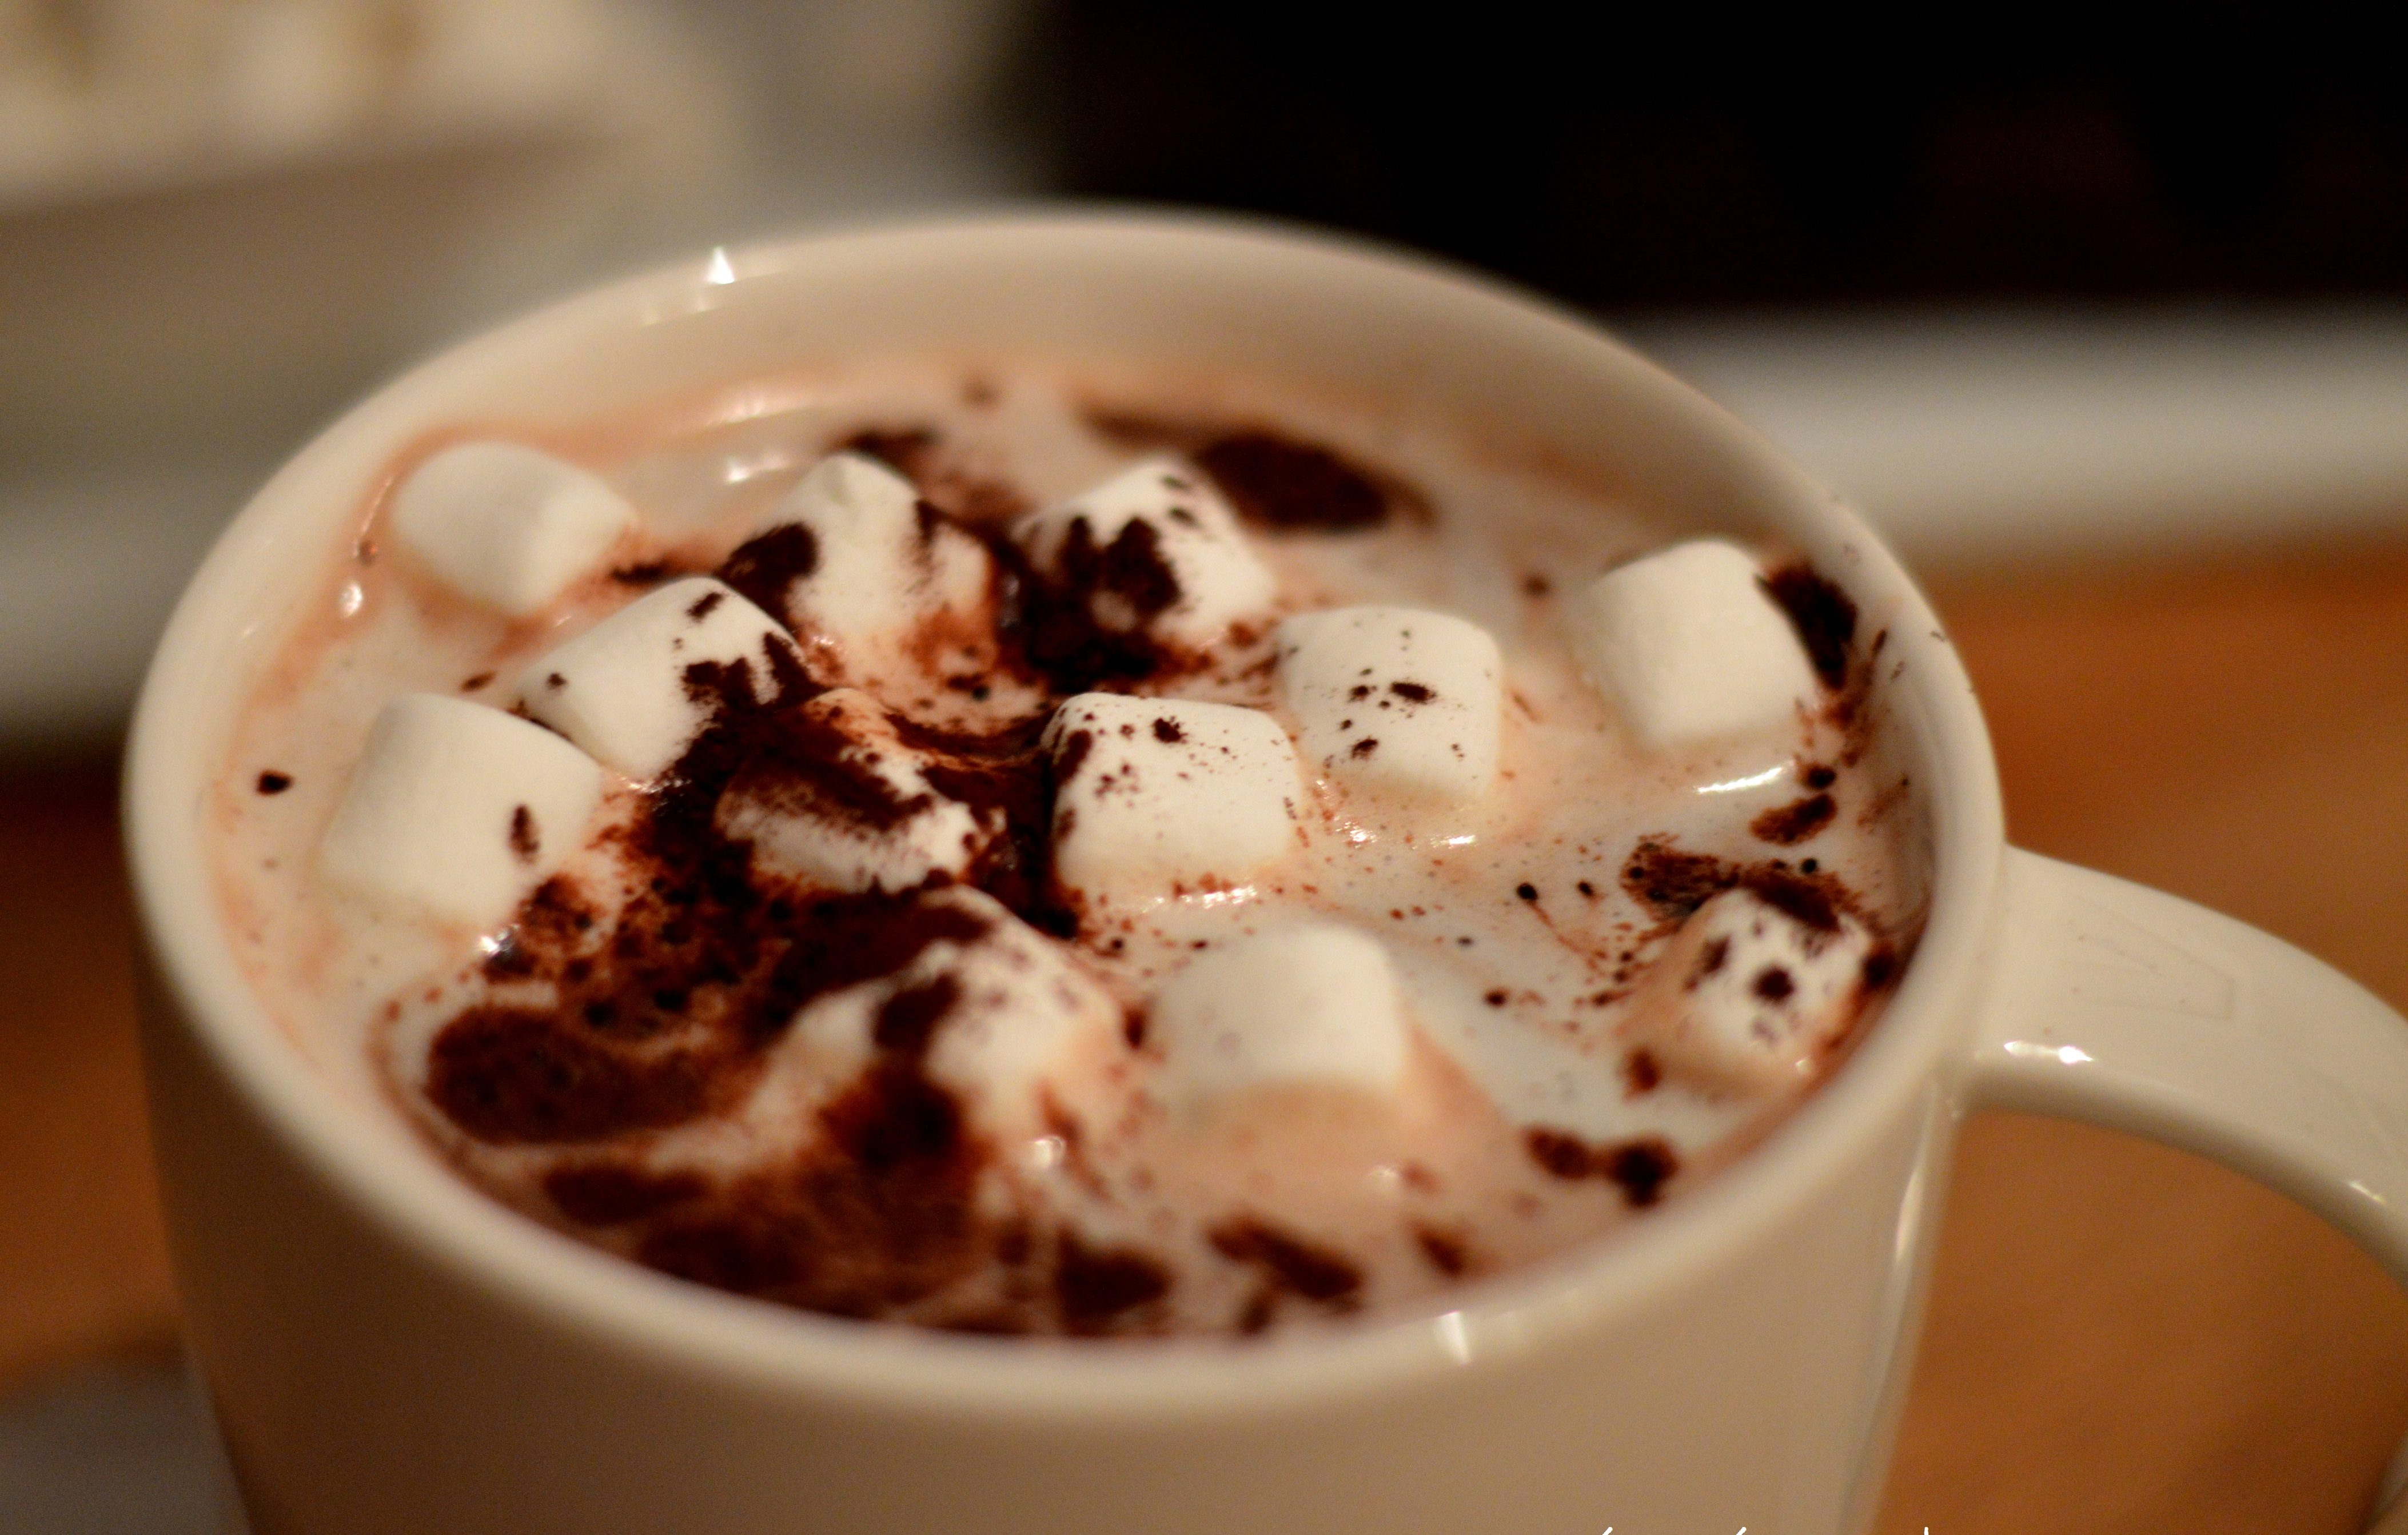 [cold days and cozy evenings] Marshmallow hot chocolate